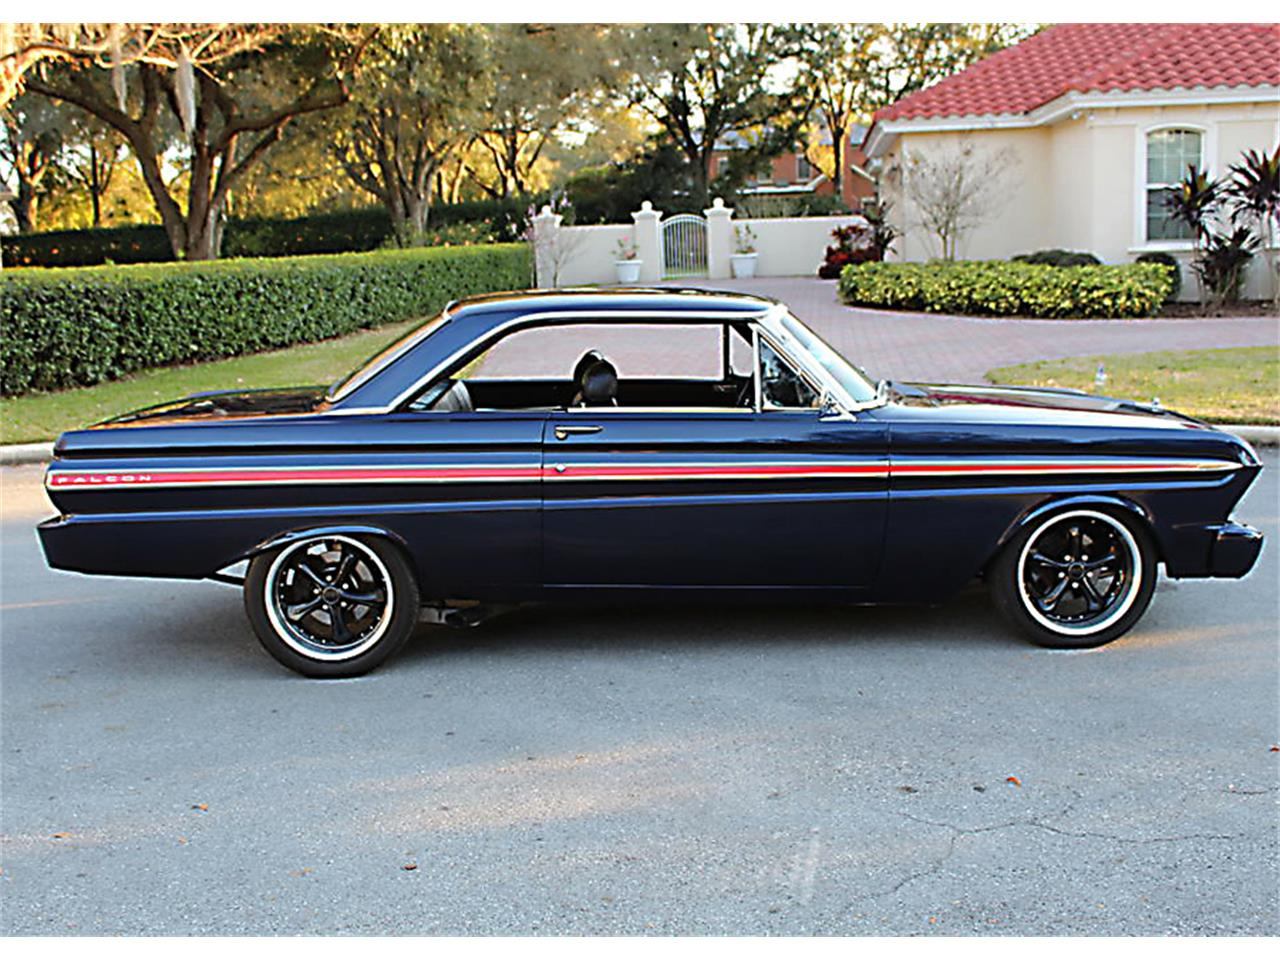 Large Picture of Classic 1965 Ford Falcon located in Florida - $29,500.00 - PH47